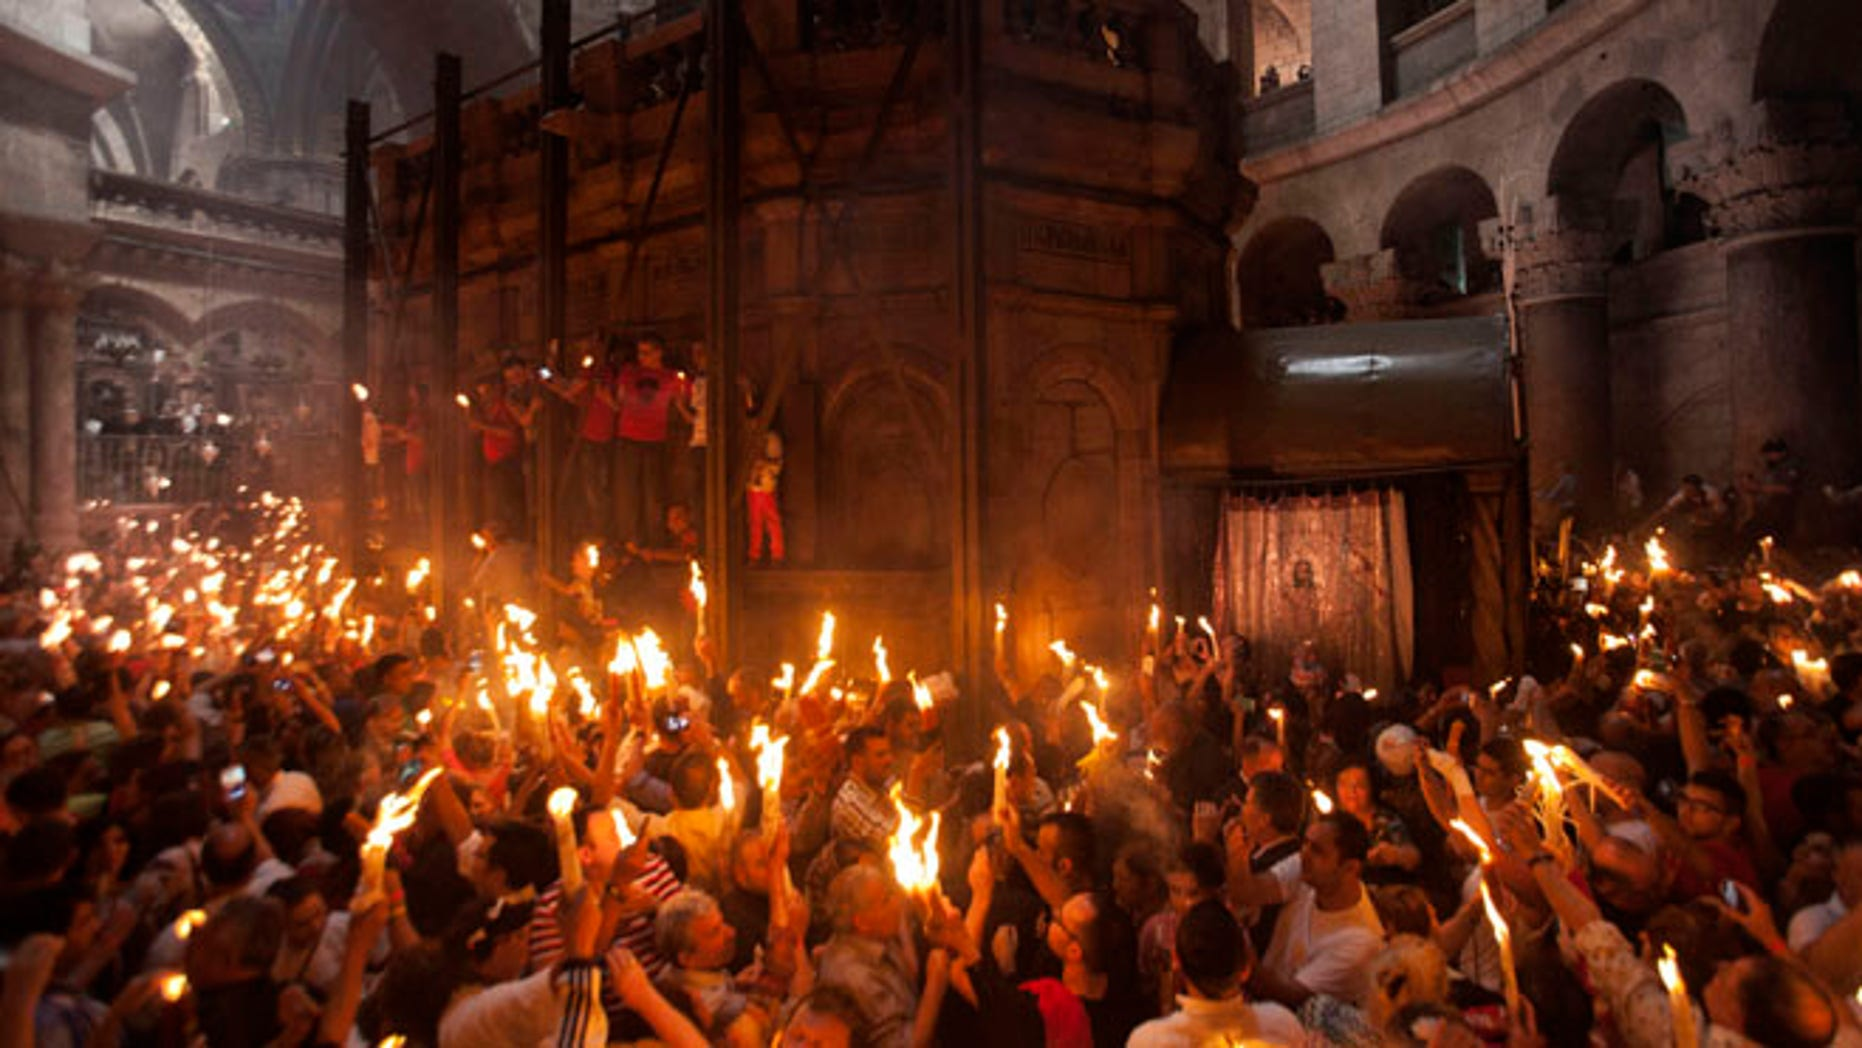 Apr. 19, 2014: Christian pilgrims hold candles at the church of the Holy Sepulcher, traditionally believed to be the burial site of Jesus Christ, during the ceremony of the Holy Fire in Jerusalem's Old City.